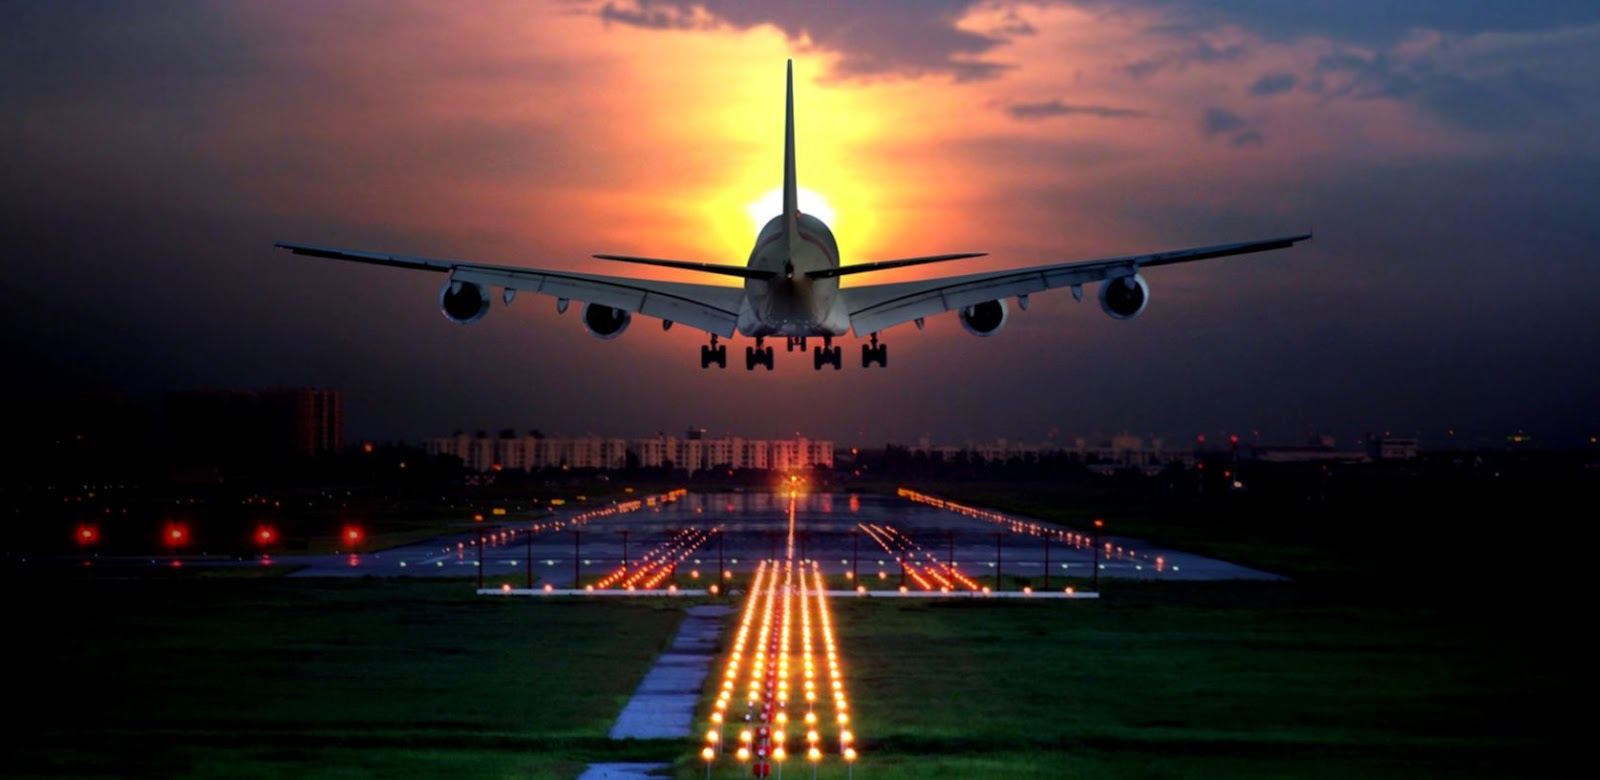 Airplane Hd Wallpaper Its Wallpapers